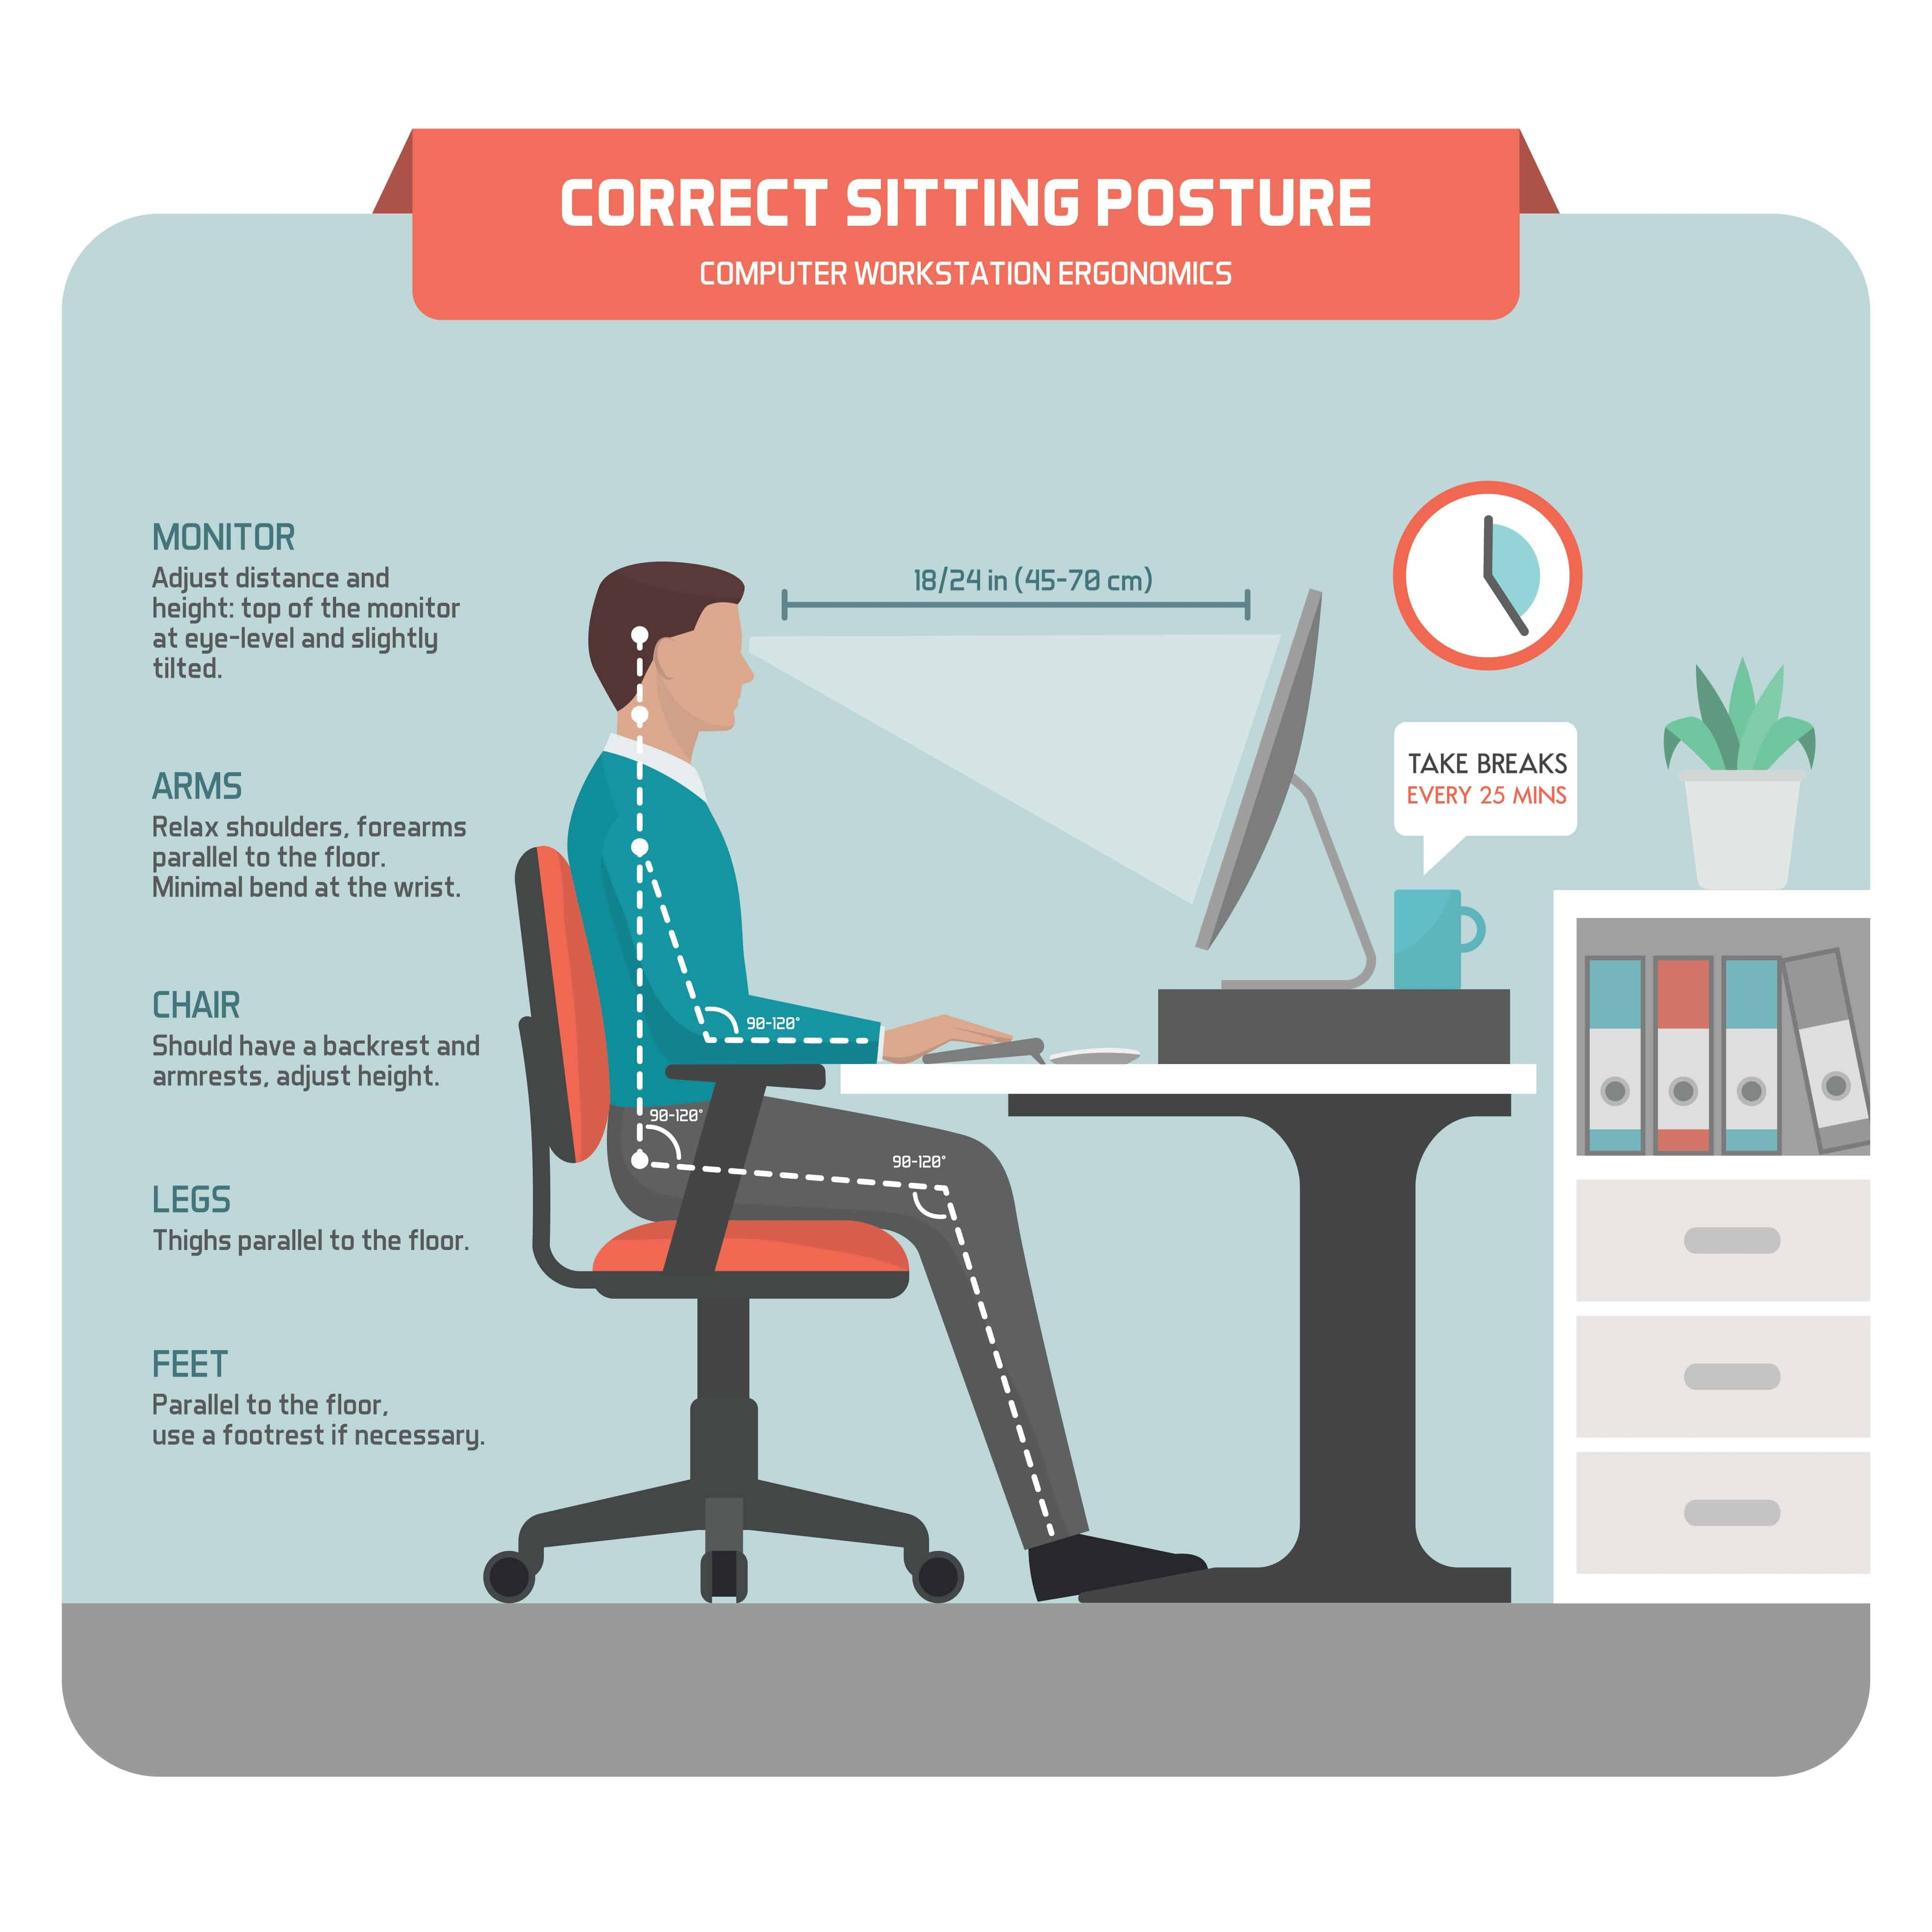 Home Office Design Tips To Stay Healthy: Correct Sitting Posture On Computer Desk